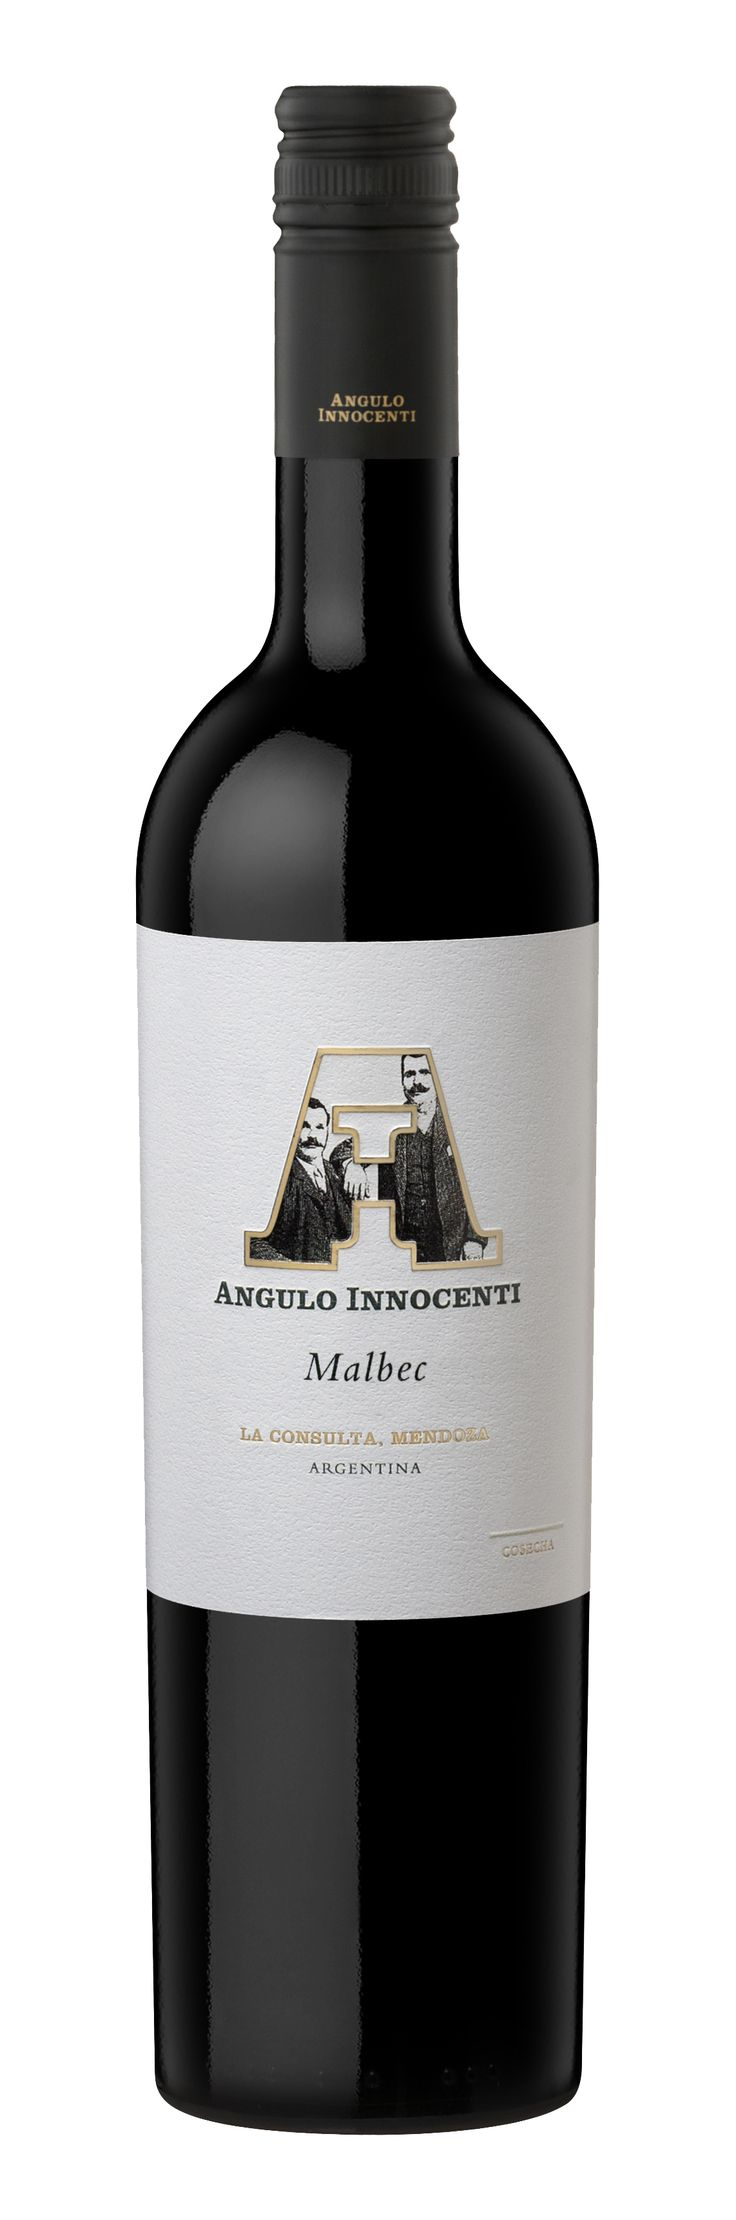 #Angulo Innocenti (Argentina) wine mxm...sacco and vanzetti?  my favorite anarchists.